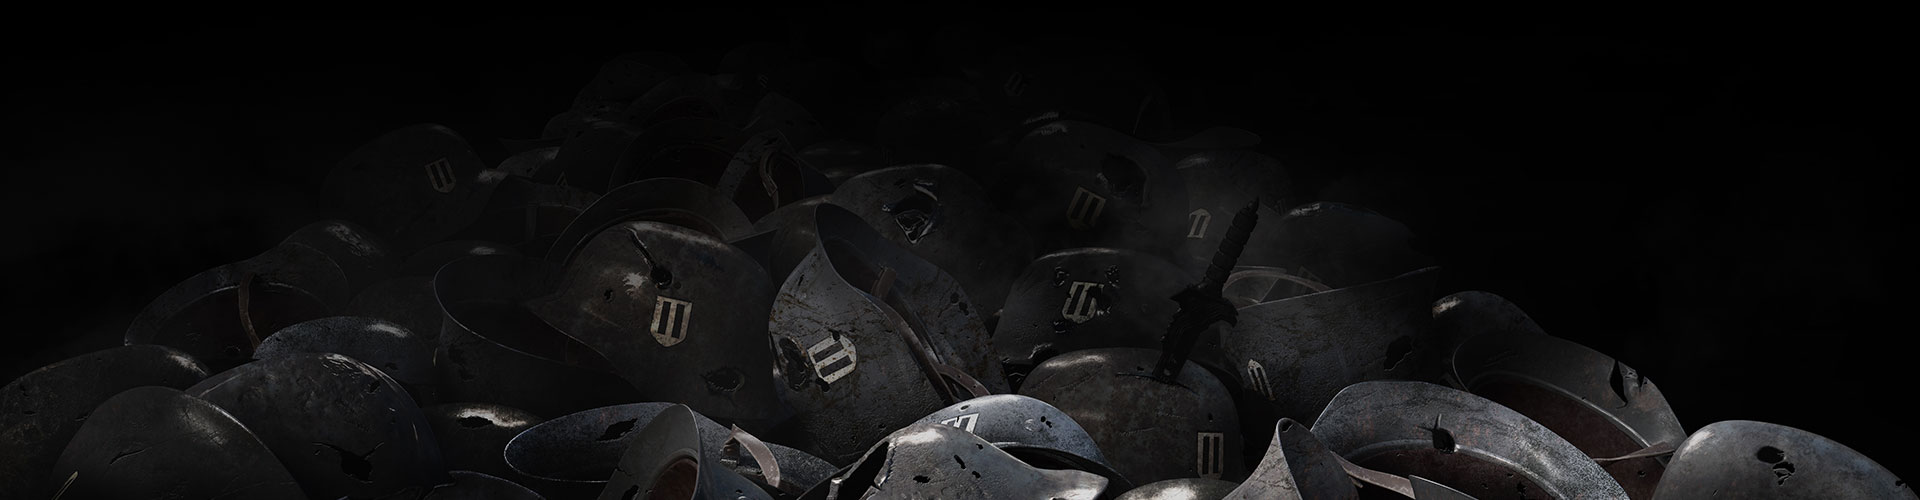 Background of pile of german army helmets